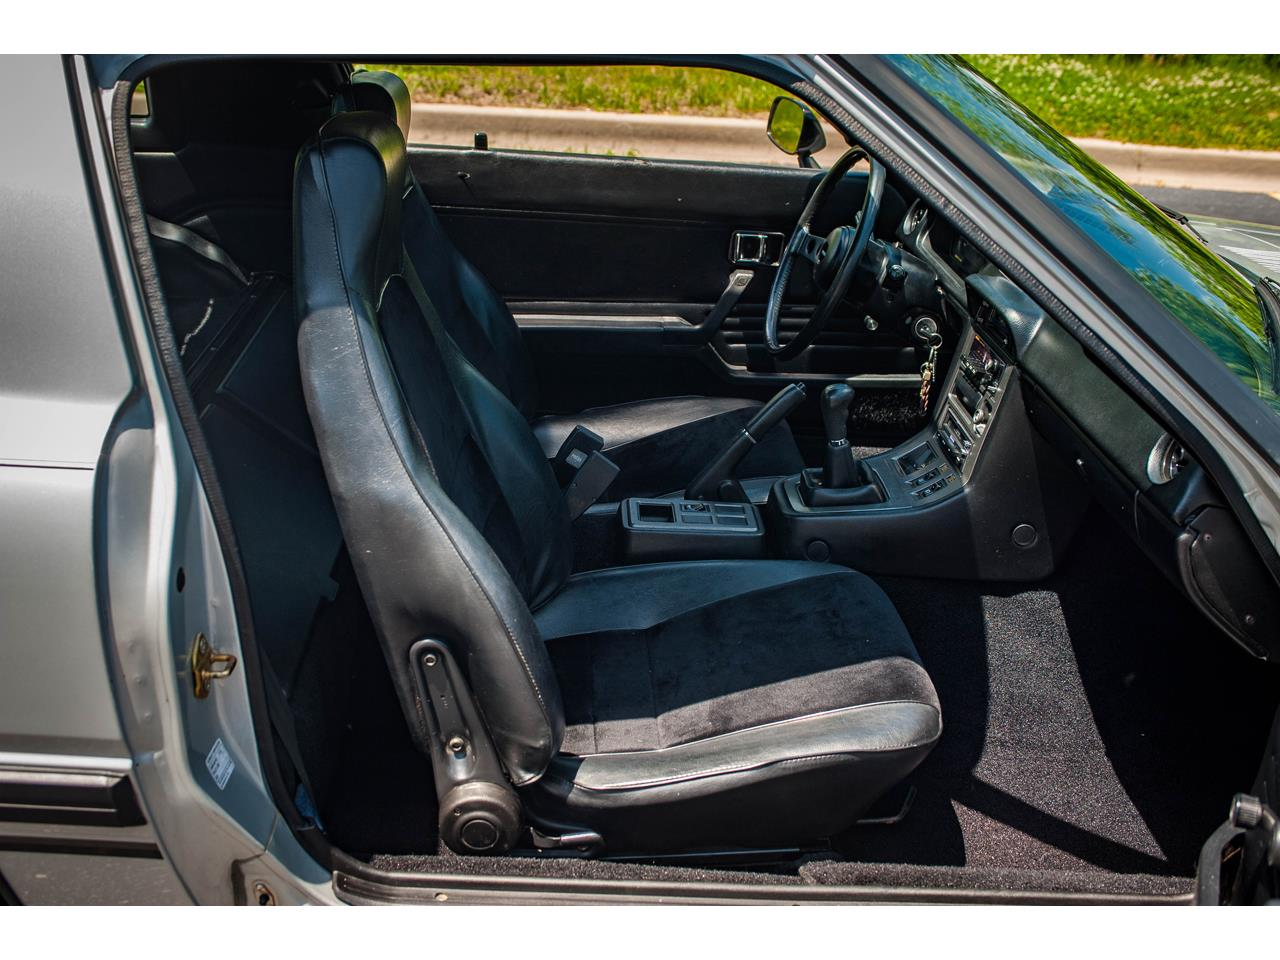 Large Picture of 1982 Mazda RX-7 located in O'Fallon Illinois Offered by Gateway Classic Cars - St. Louis - QB9V